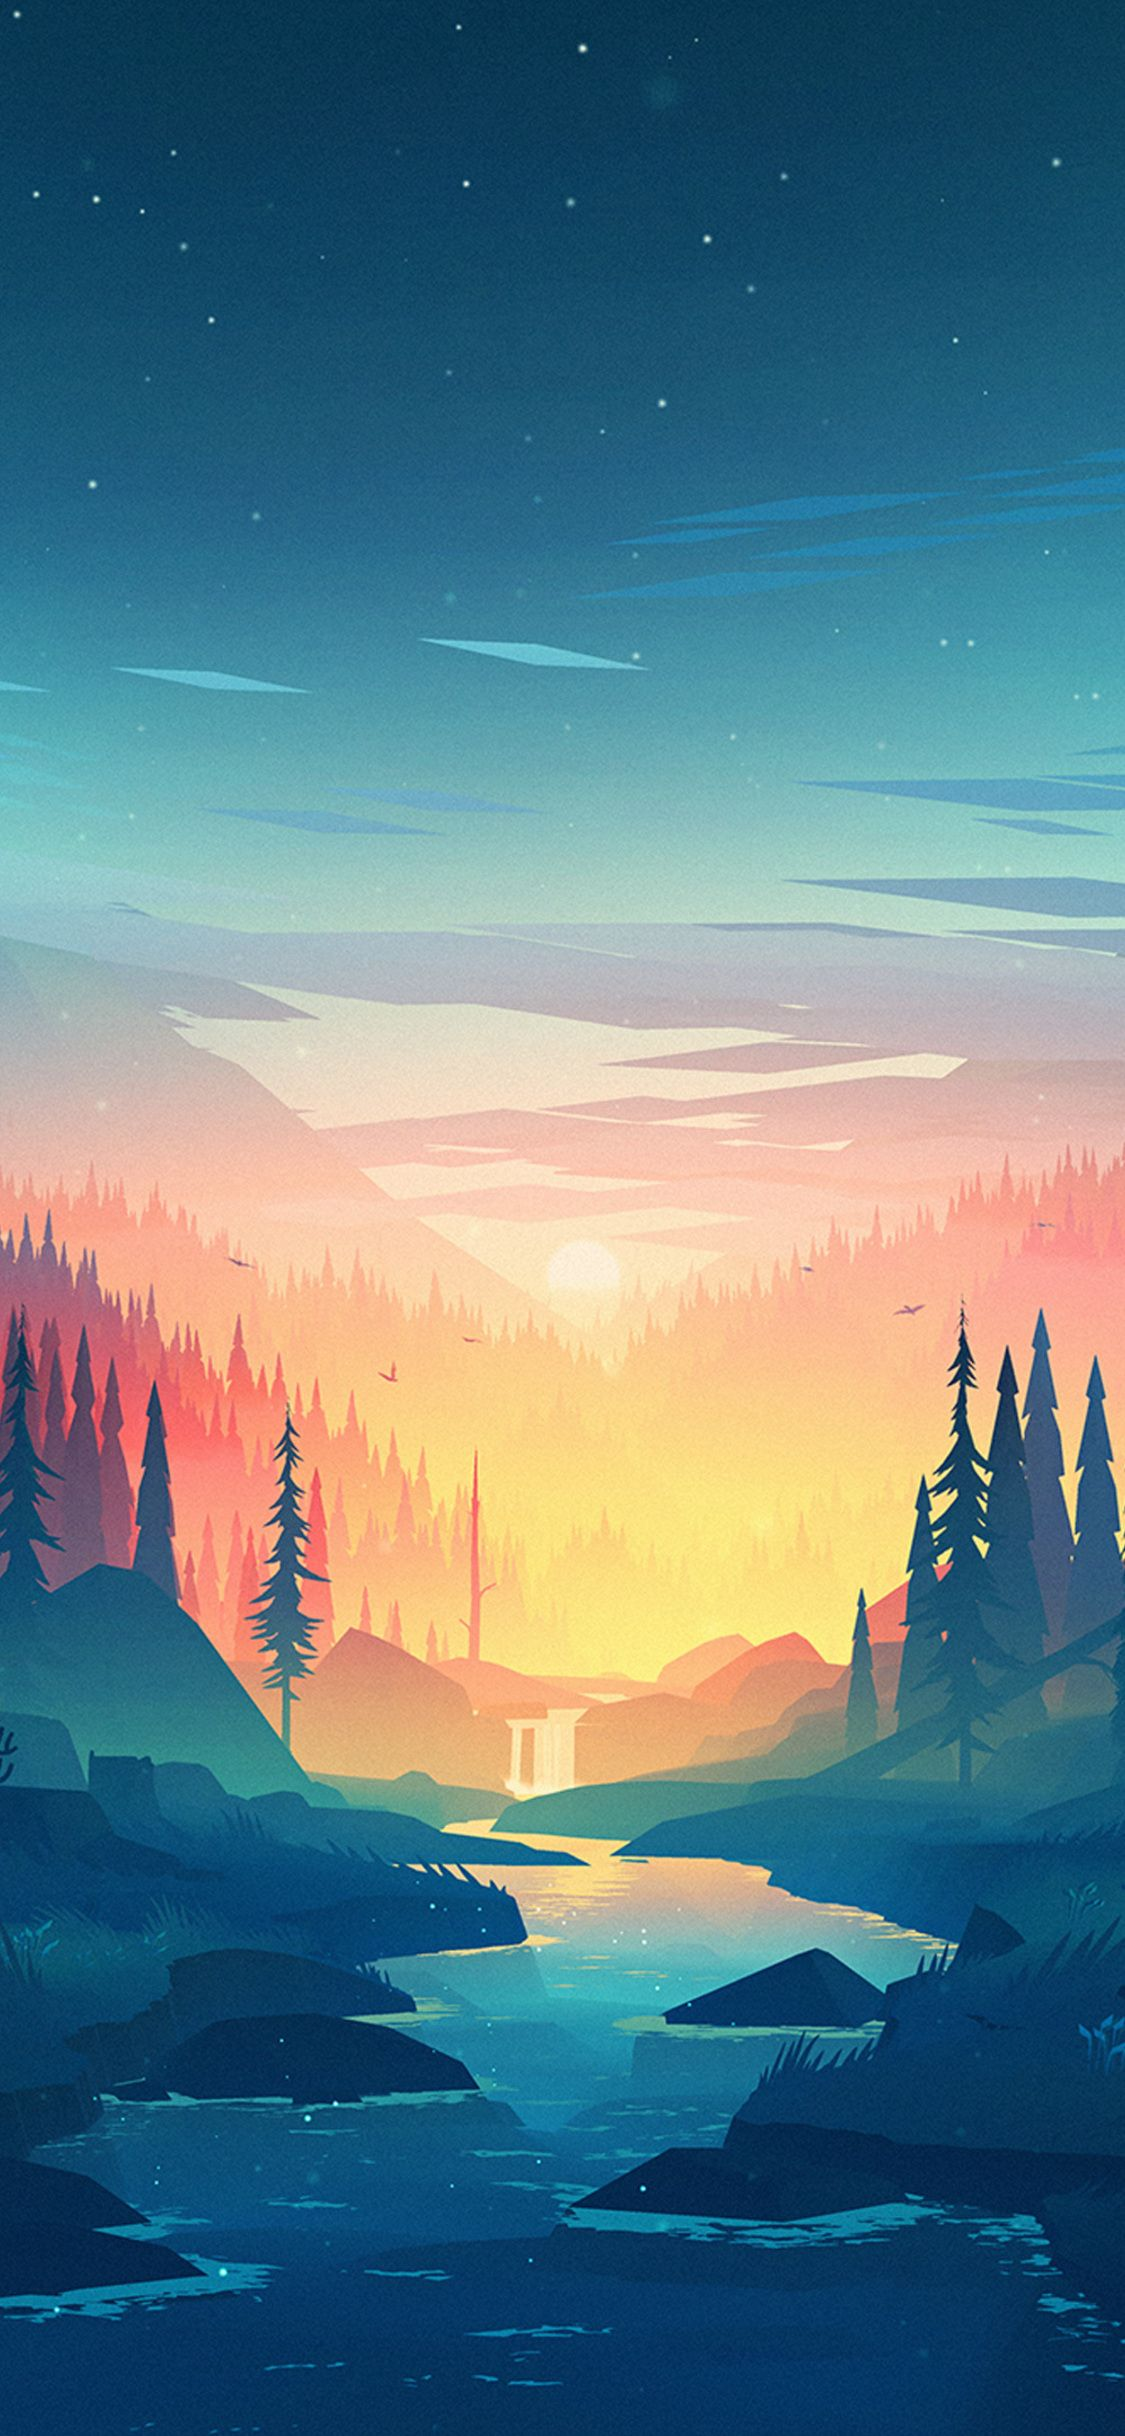 Ultra Hd Wallpapers For Iphone Posted By Sarah Johnson